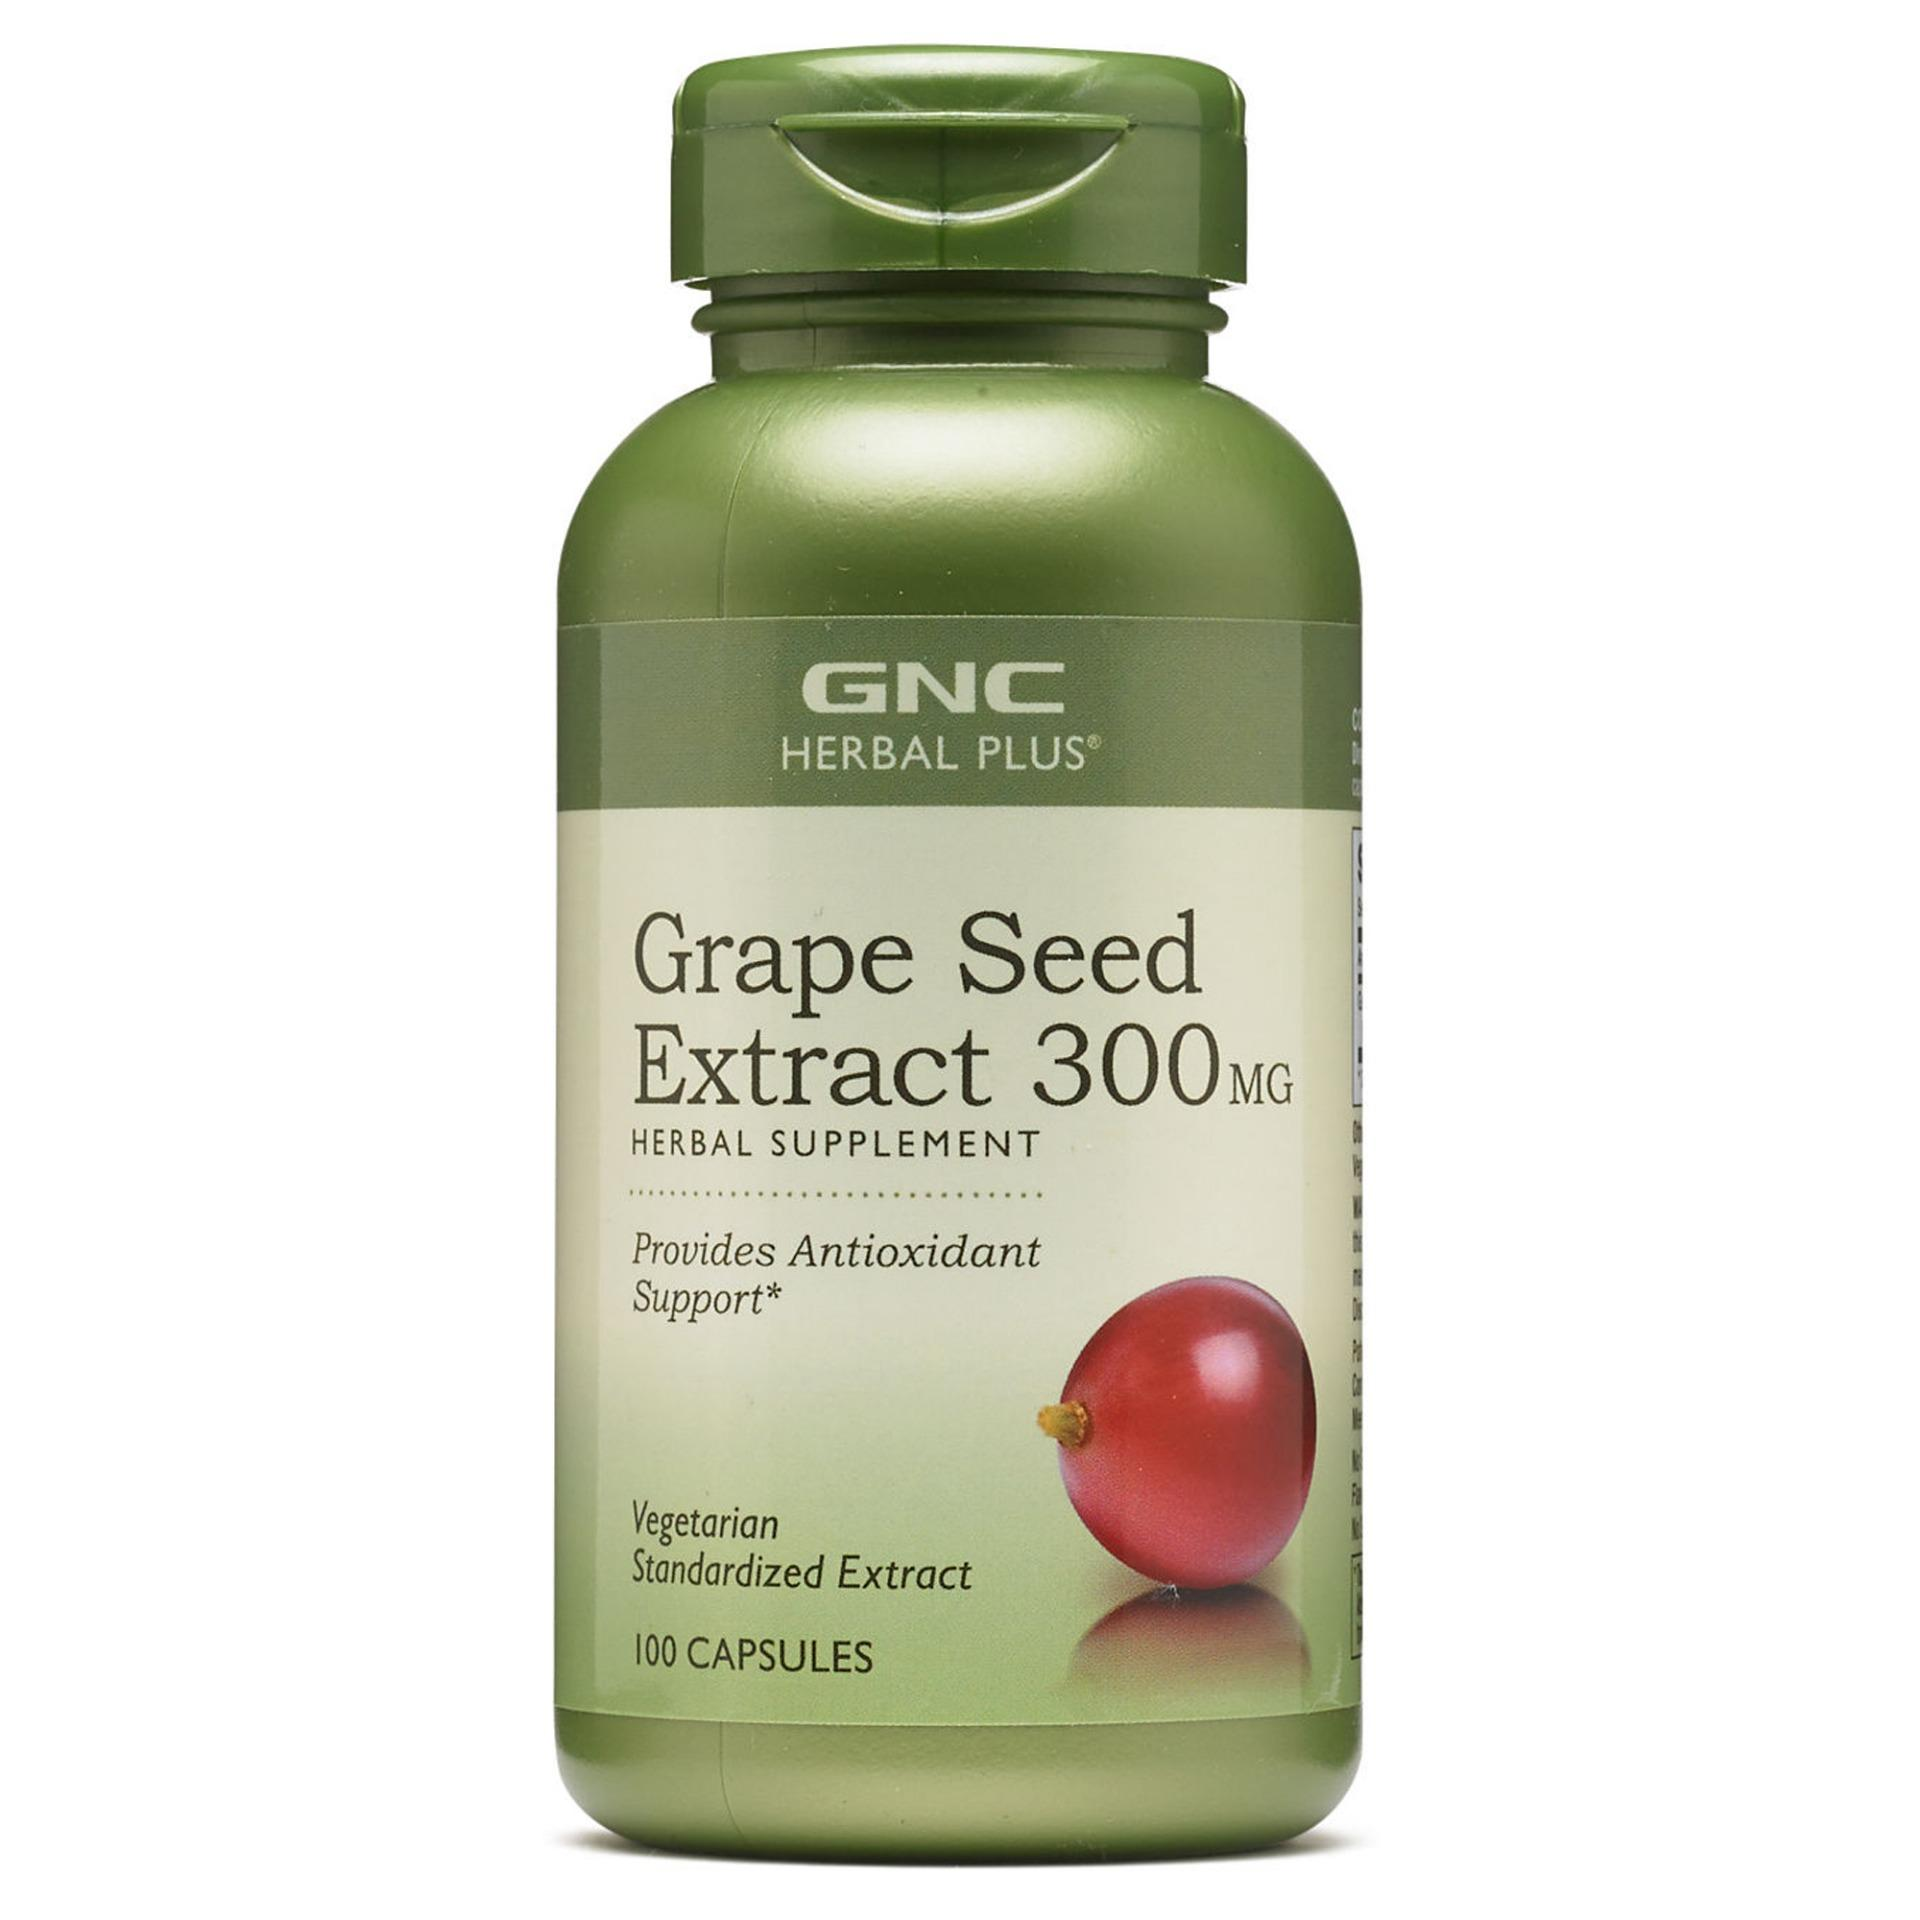 Sale Gnc Herbal Plus Grape Seed Extract 300Mg 100 Capsules Gnc On Singapore